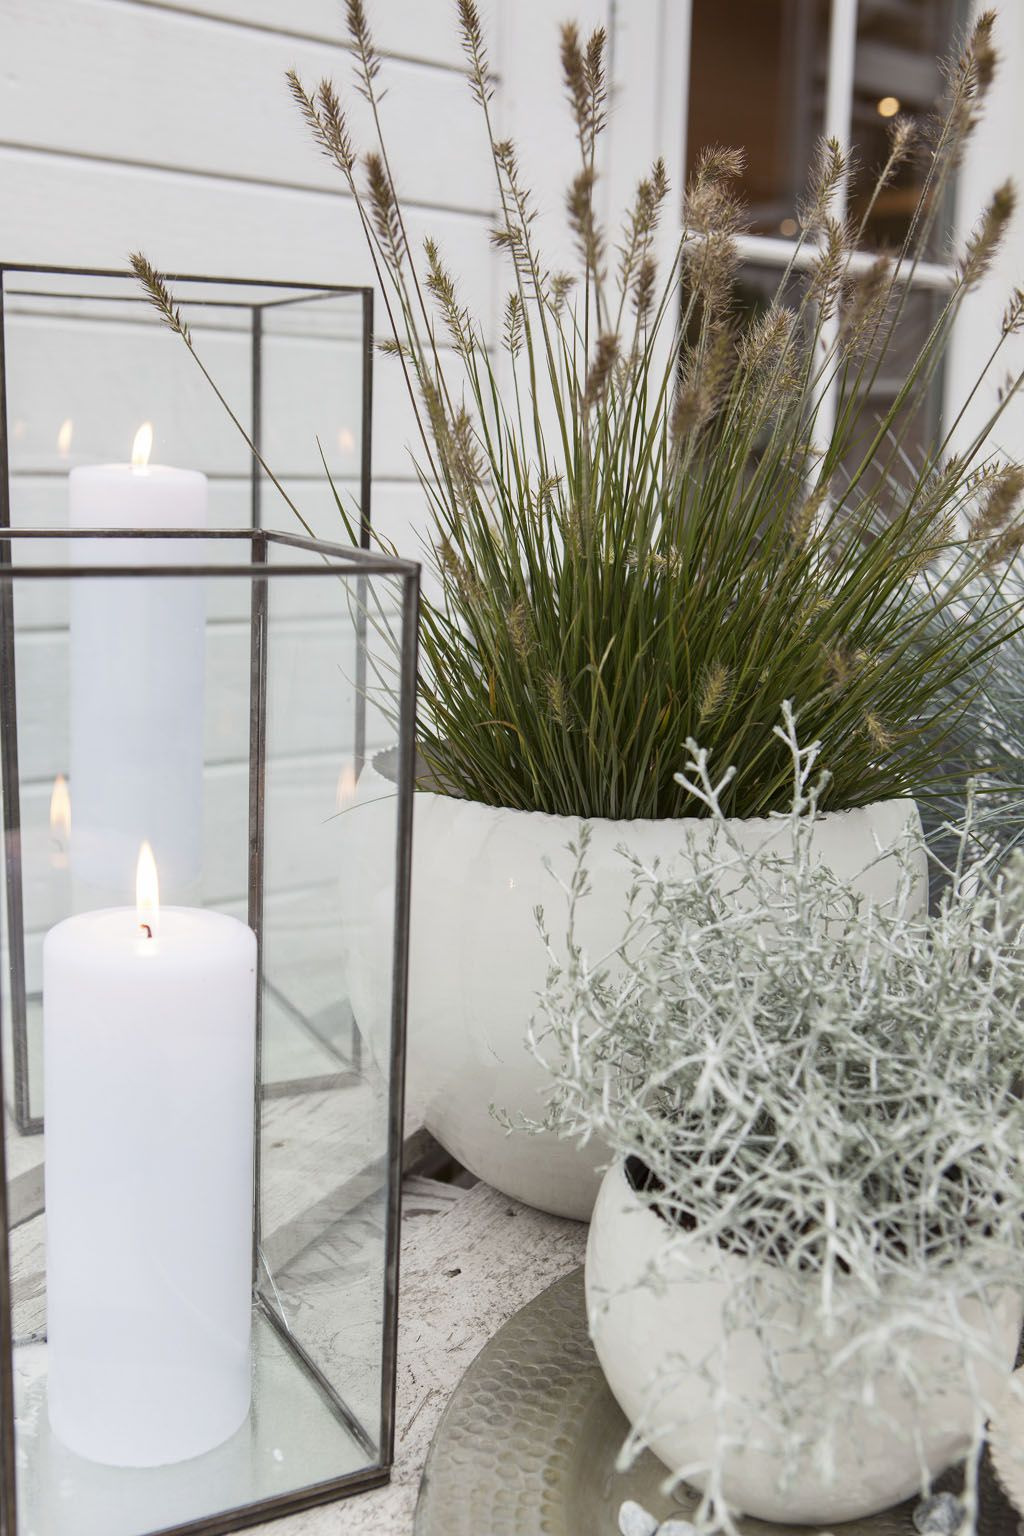 Pool Garten Winter Pin By Nick Mccullough Apld On Containers Planters Garten